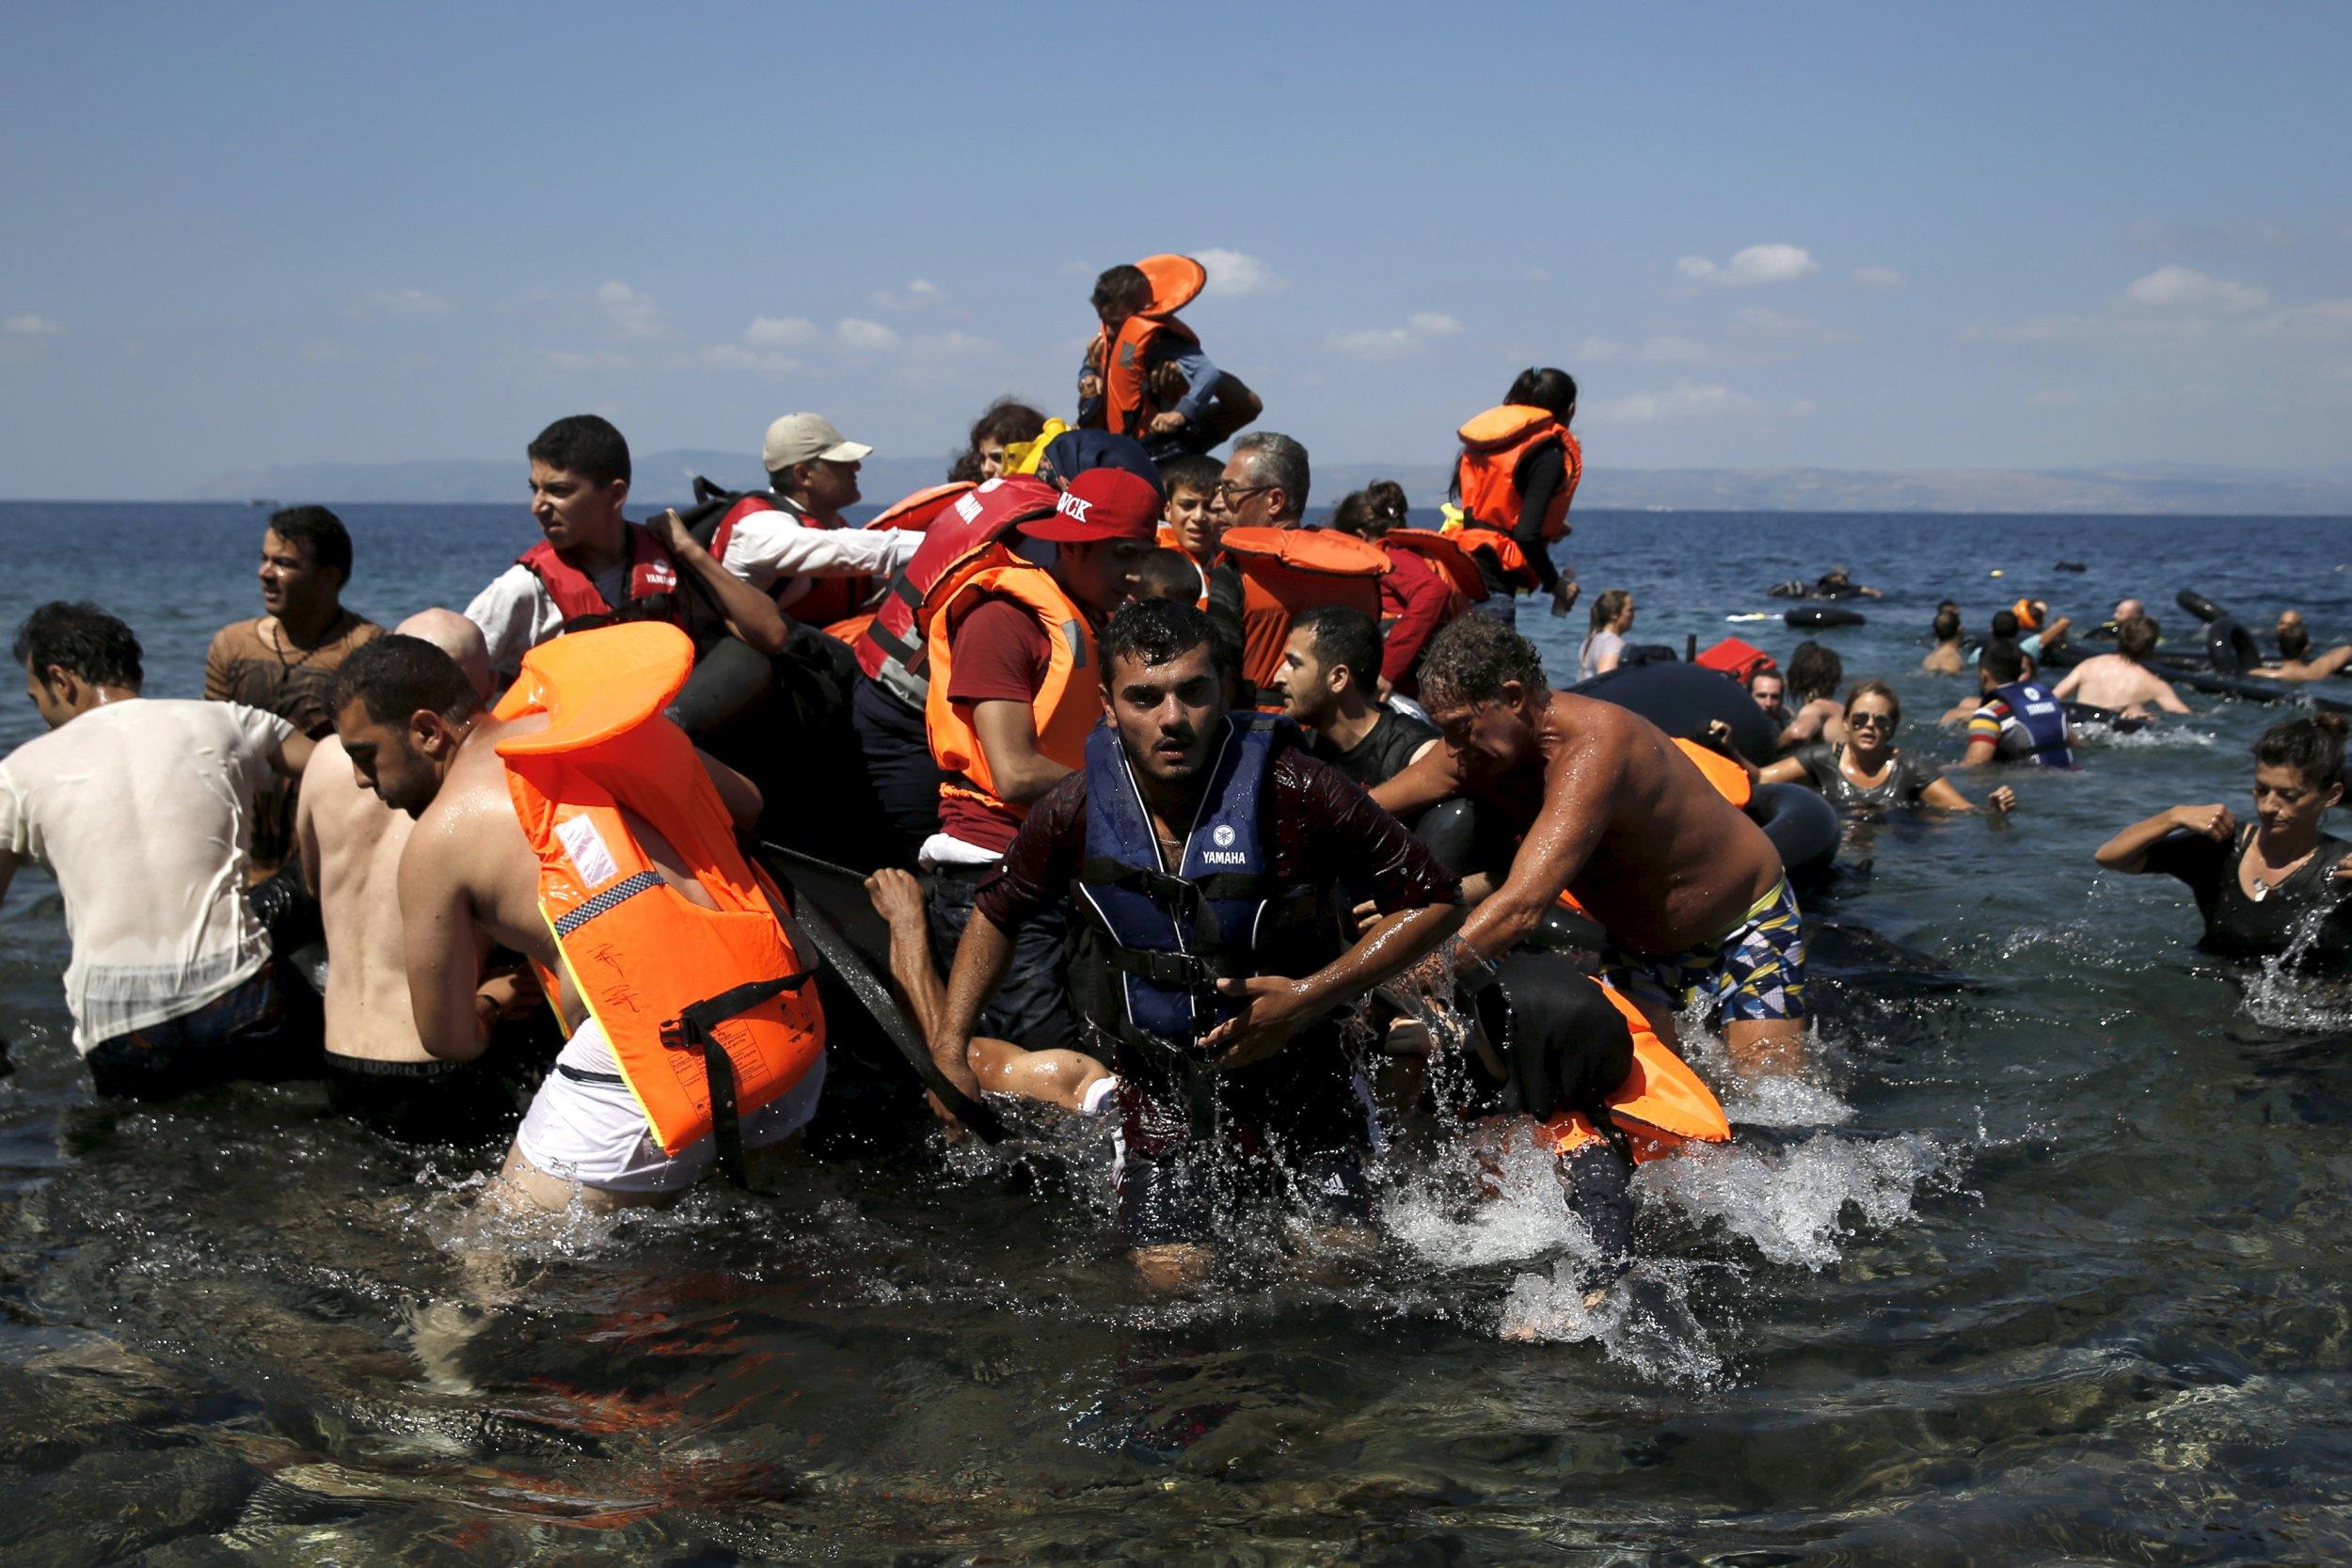 09_13_2015_greece_refugees